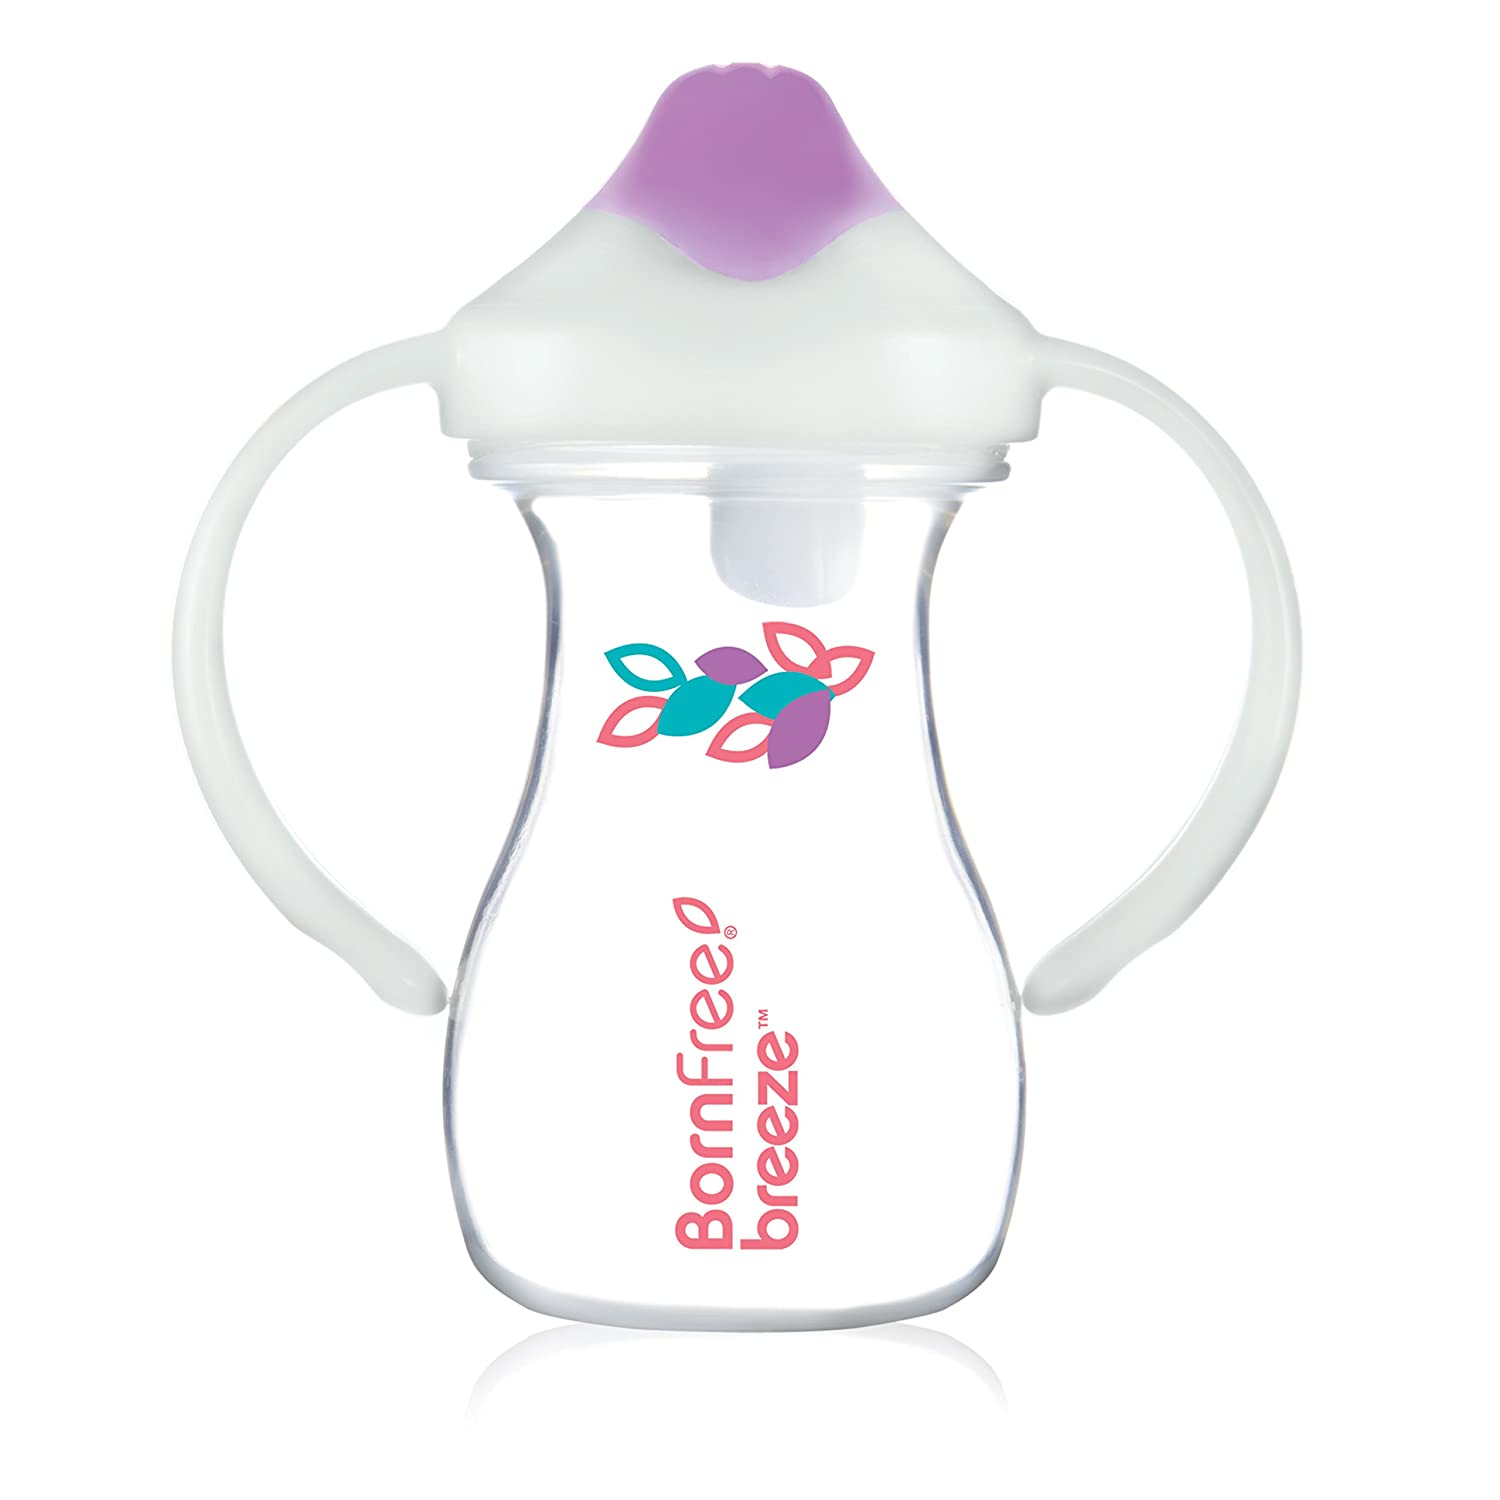 Product Breeze 5 oz. Transition Trainer Cup 1-Pack Violet Girl Very popular